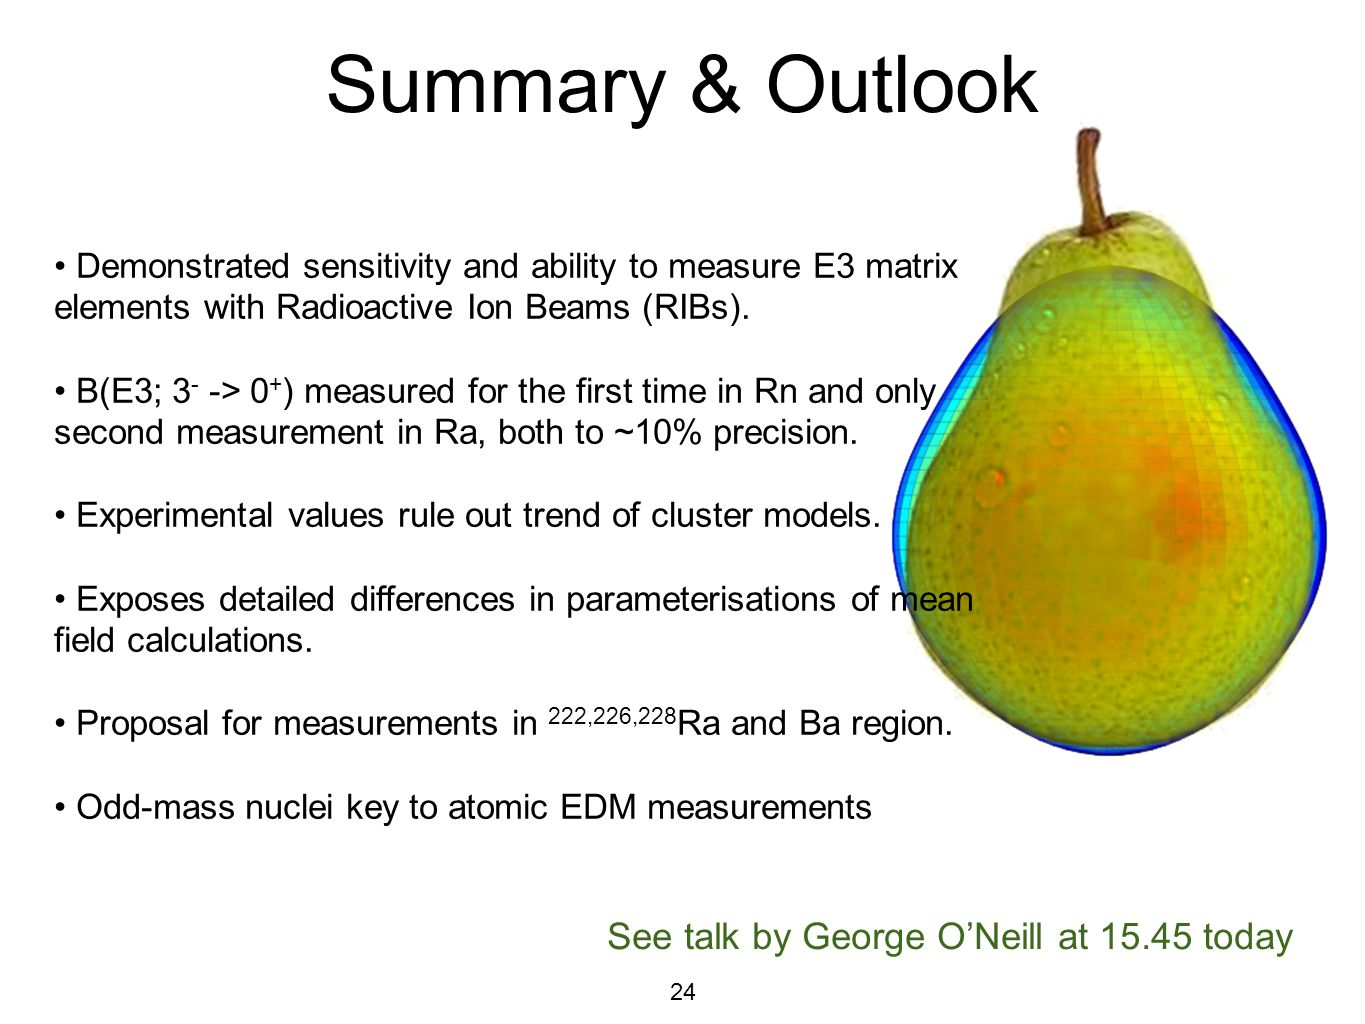 24 Summary & Outlook See talk by George O'Neill at 15.45 today Demonstrated sensitivity and ability to measure E3 matrix elements with Radioactive Ion